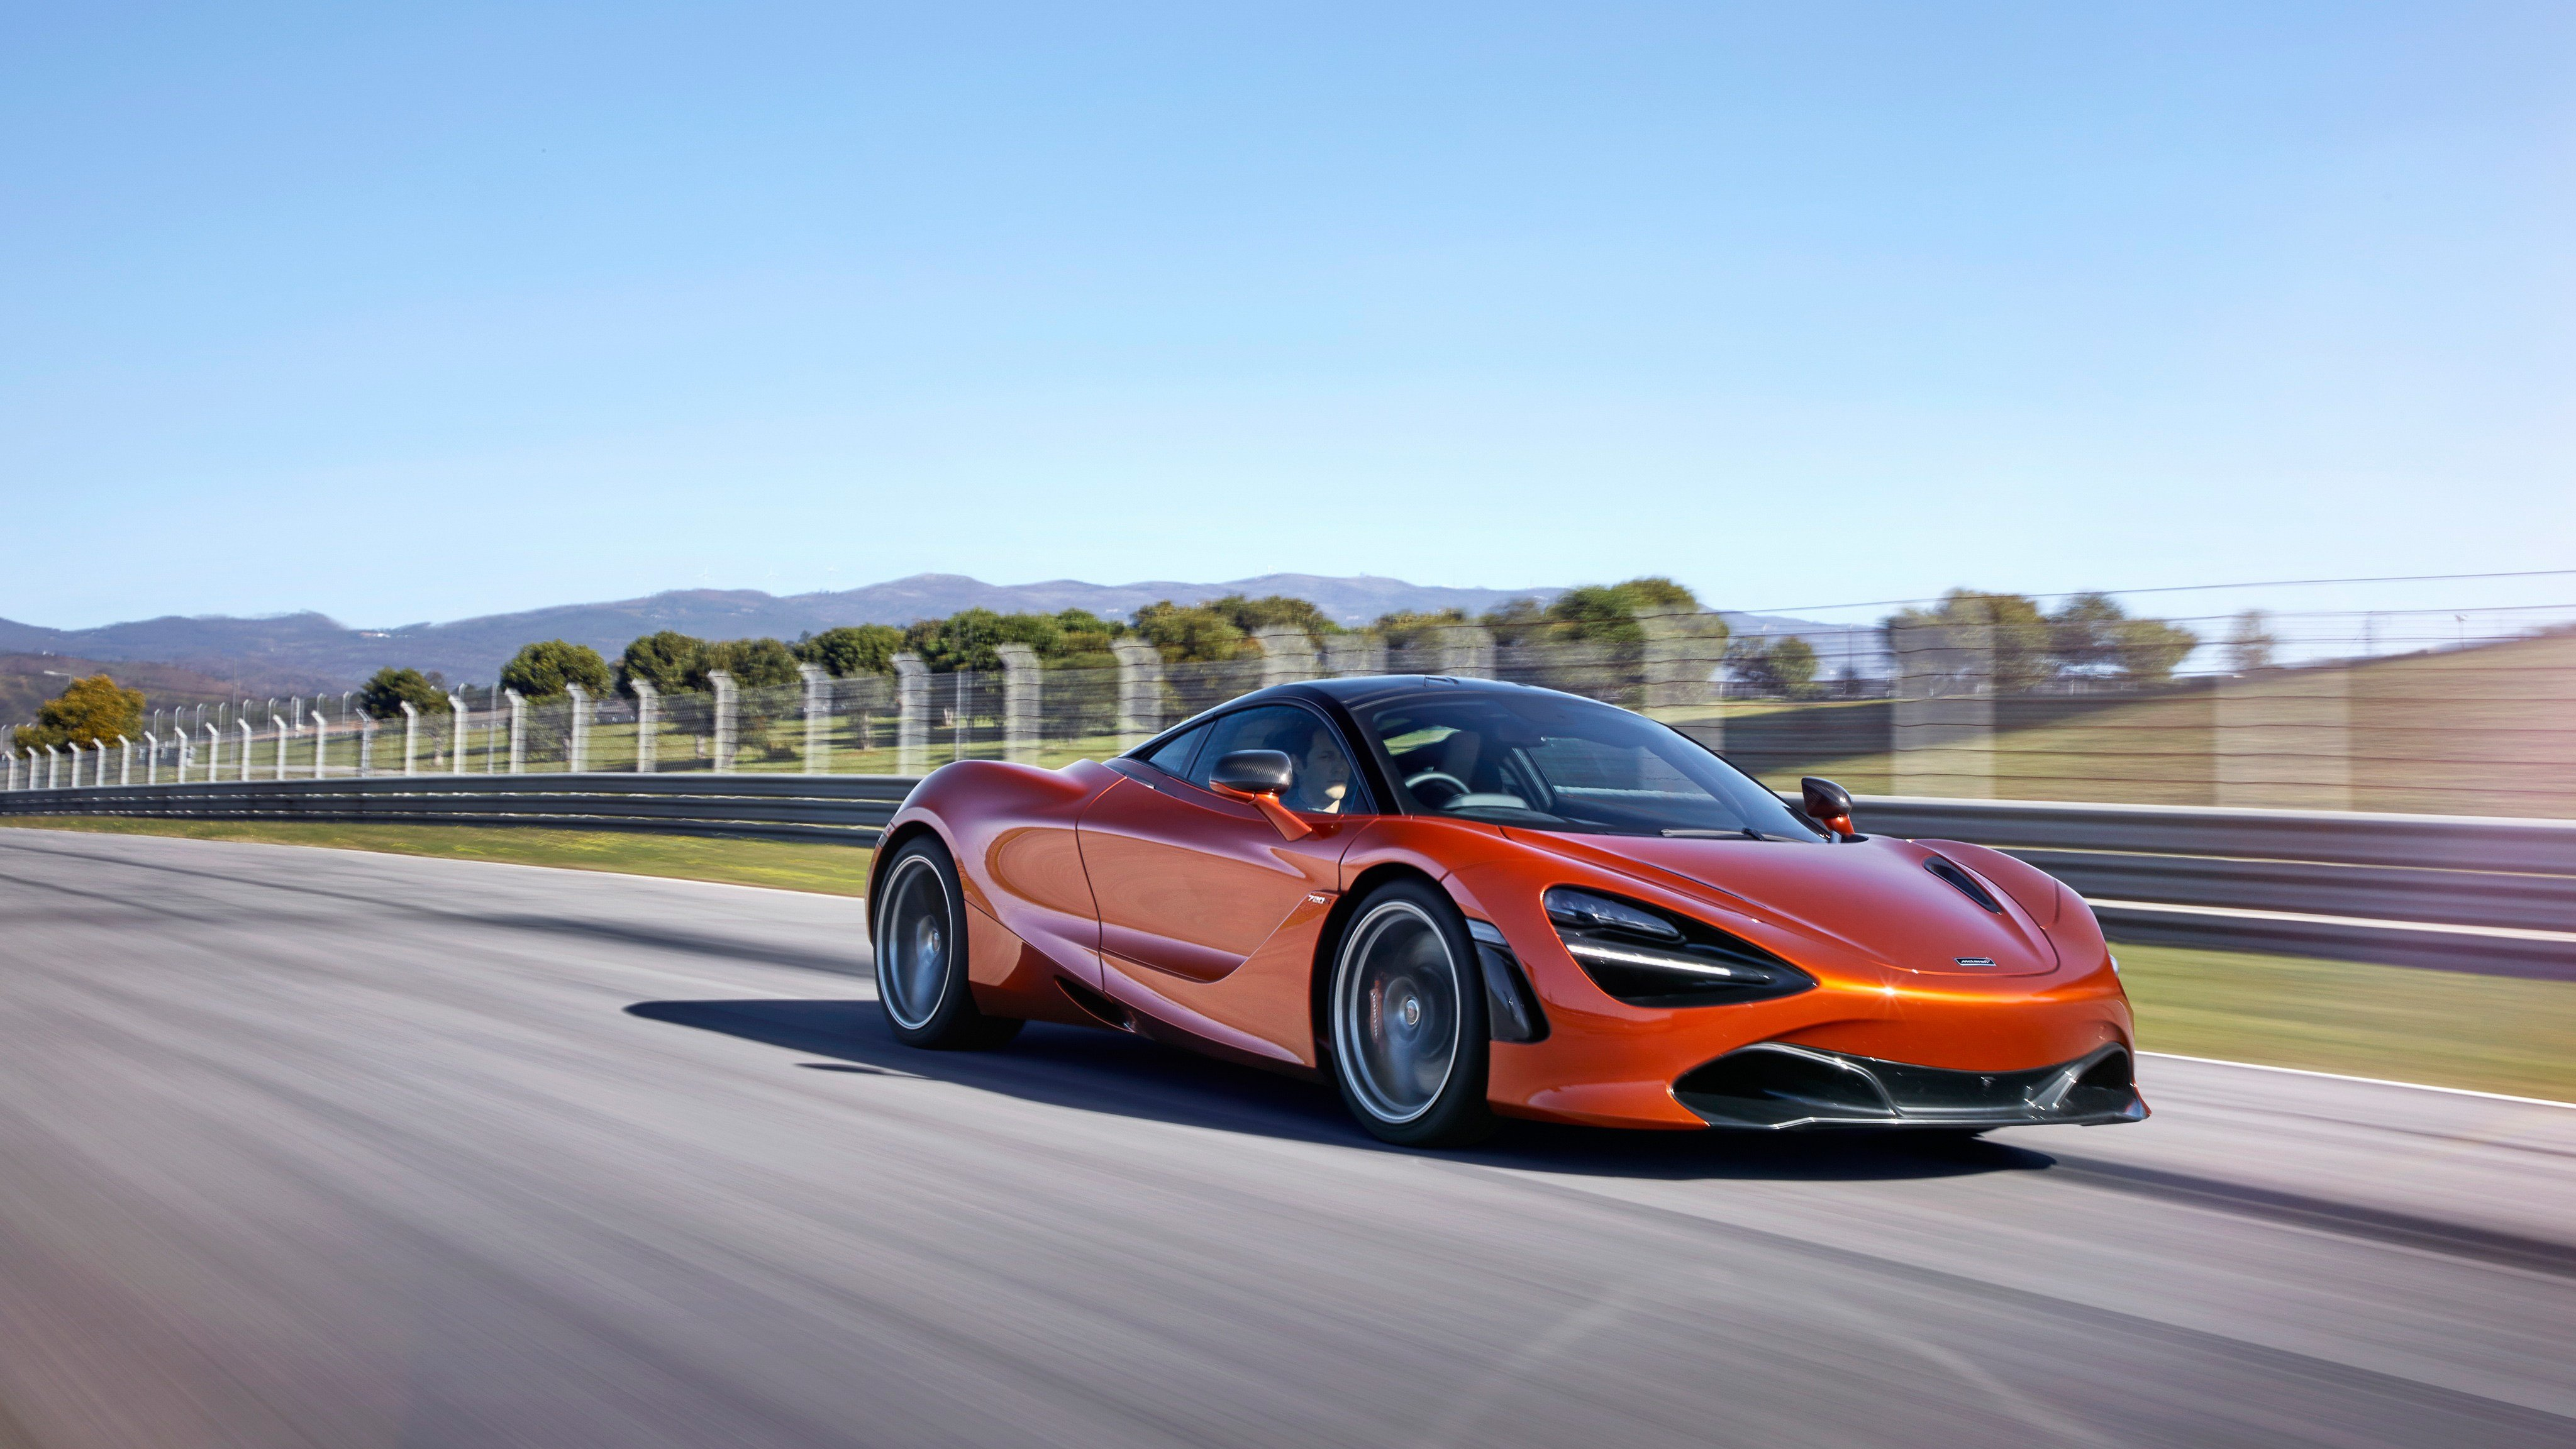 Latest Mclaren 720S Coupe 2017 4K Wallpaper Hd Car Wallpapers Free Download